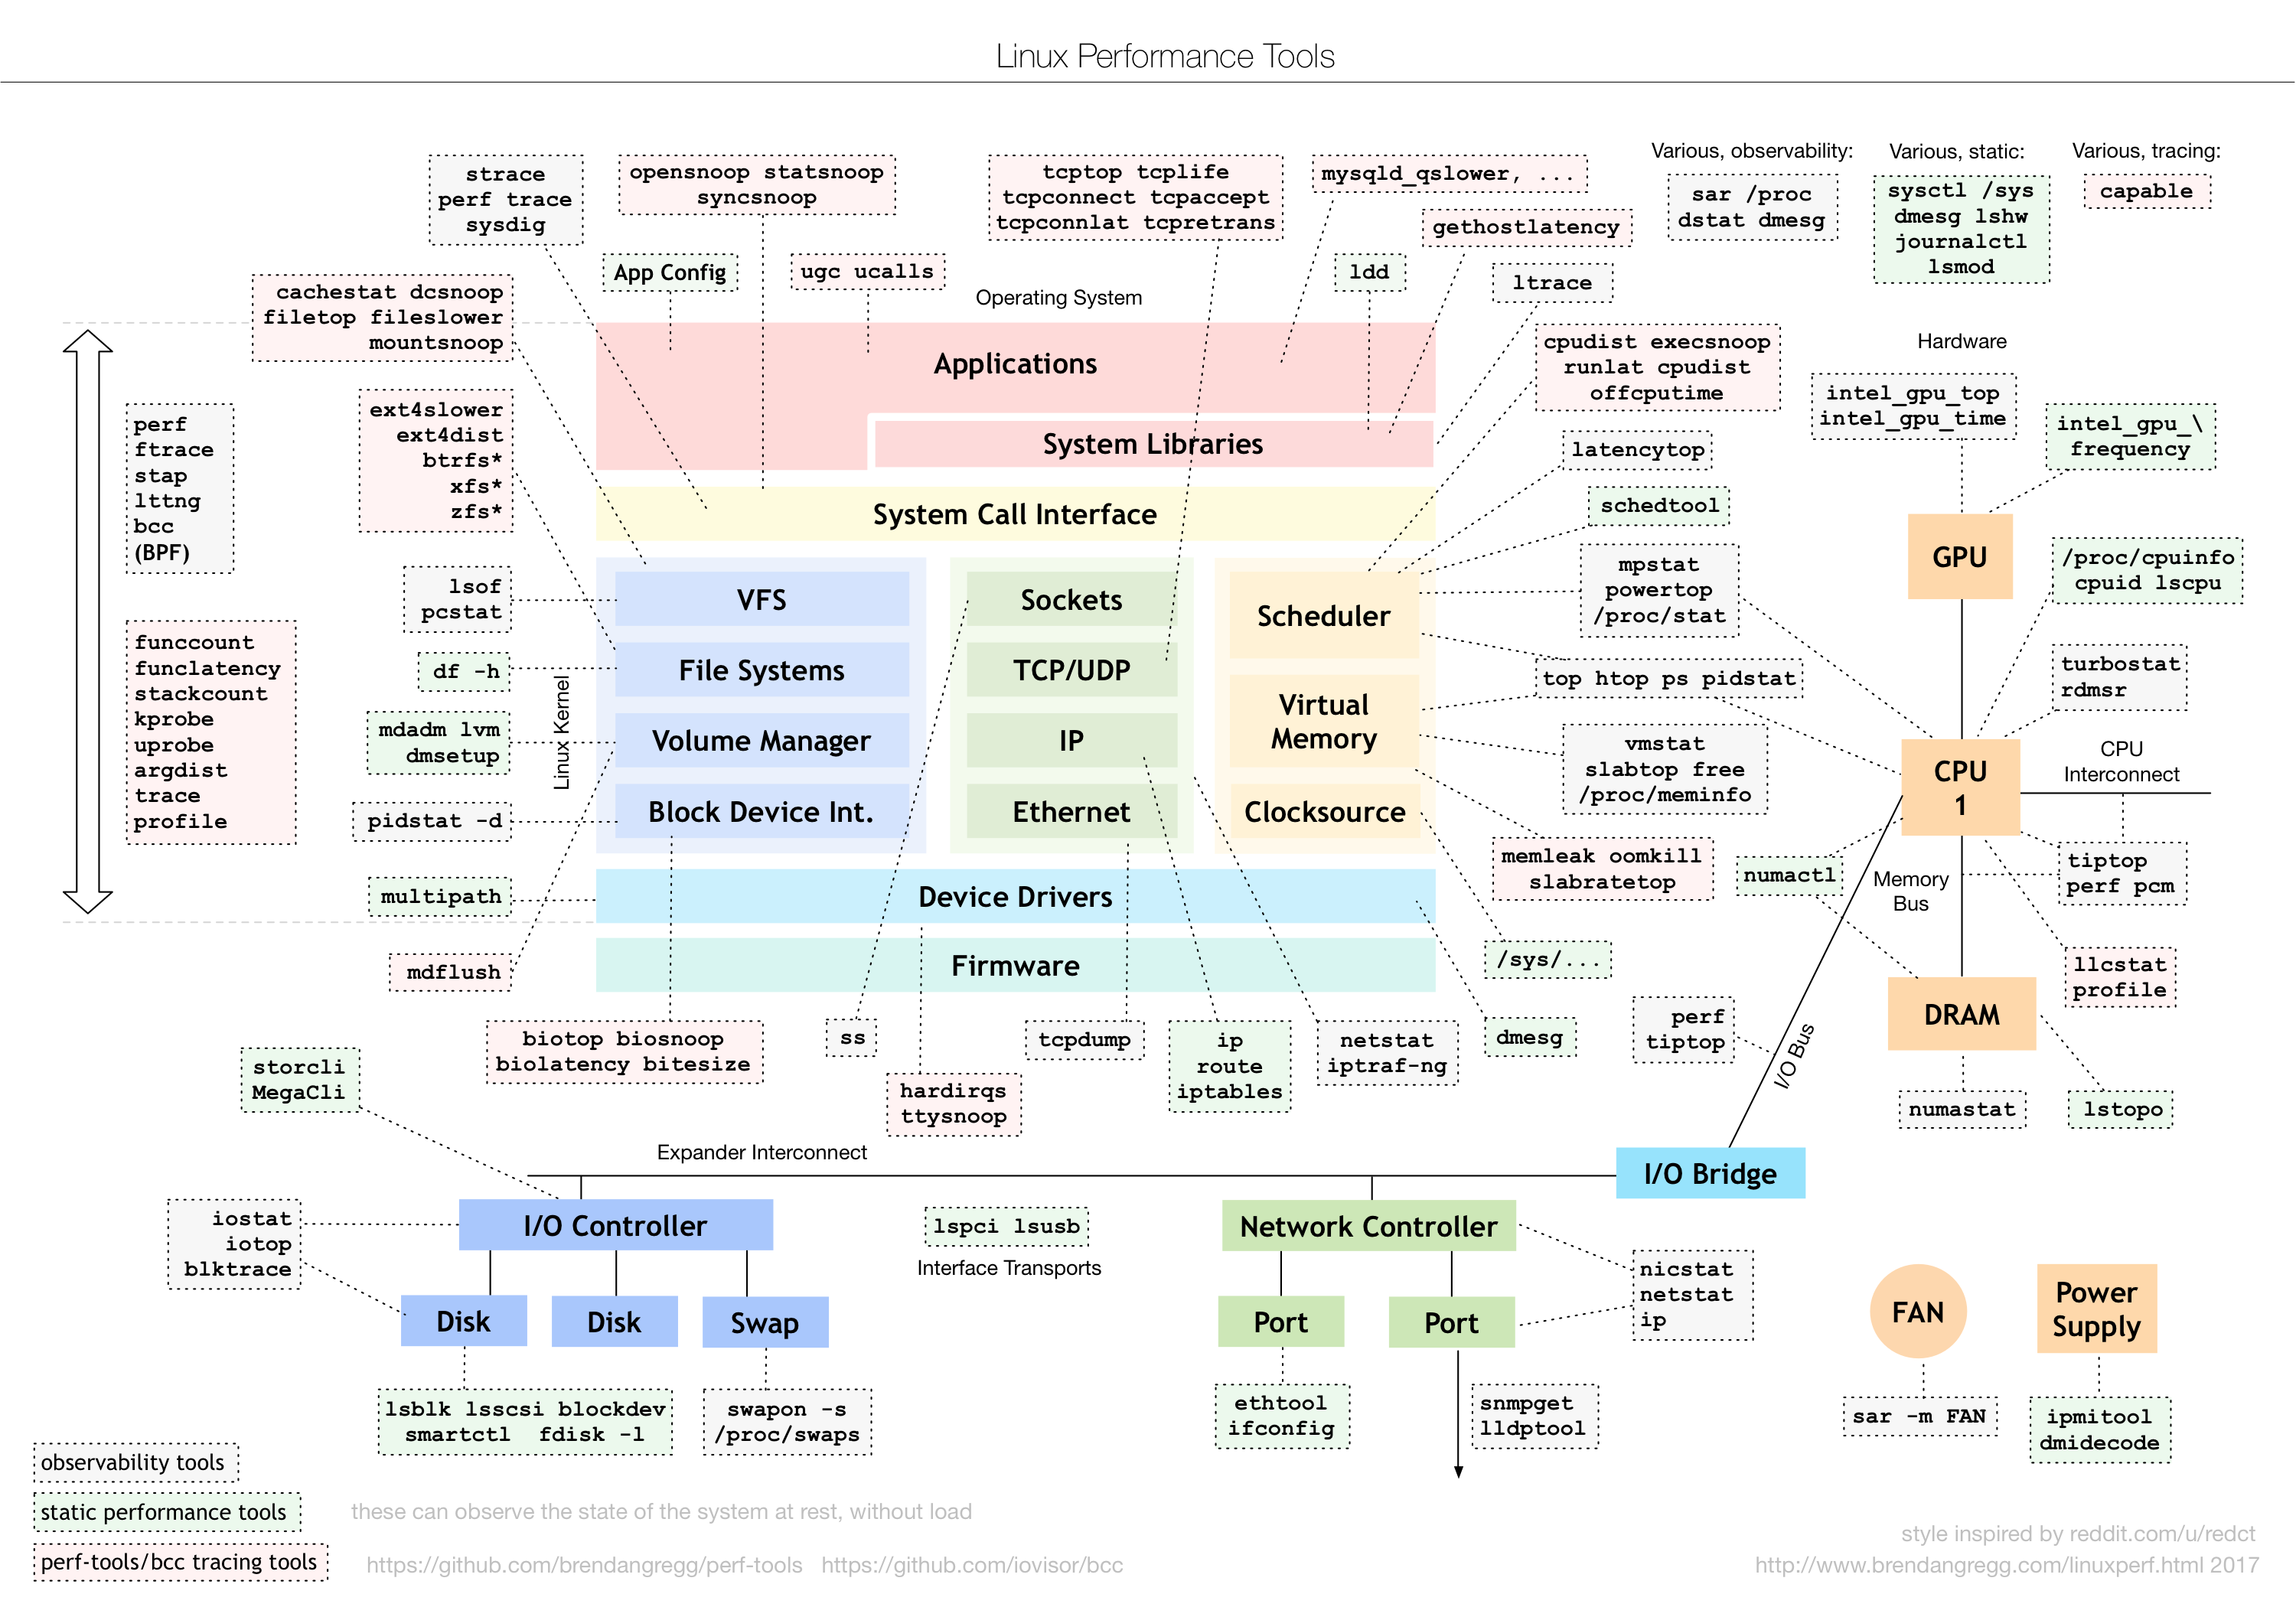 Linux Performance Tools Diagram By Brendan Gregg